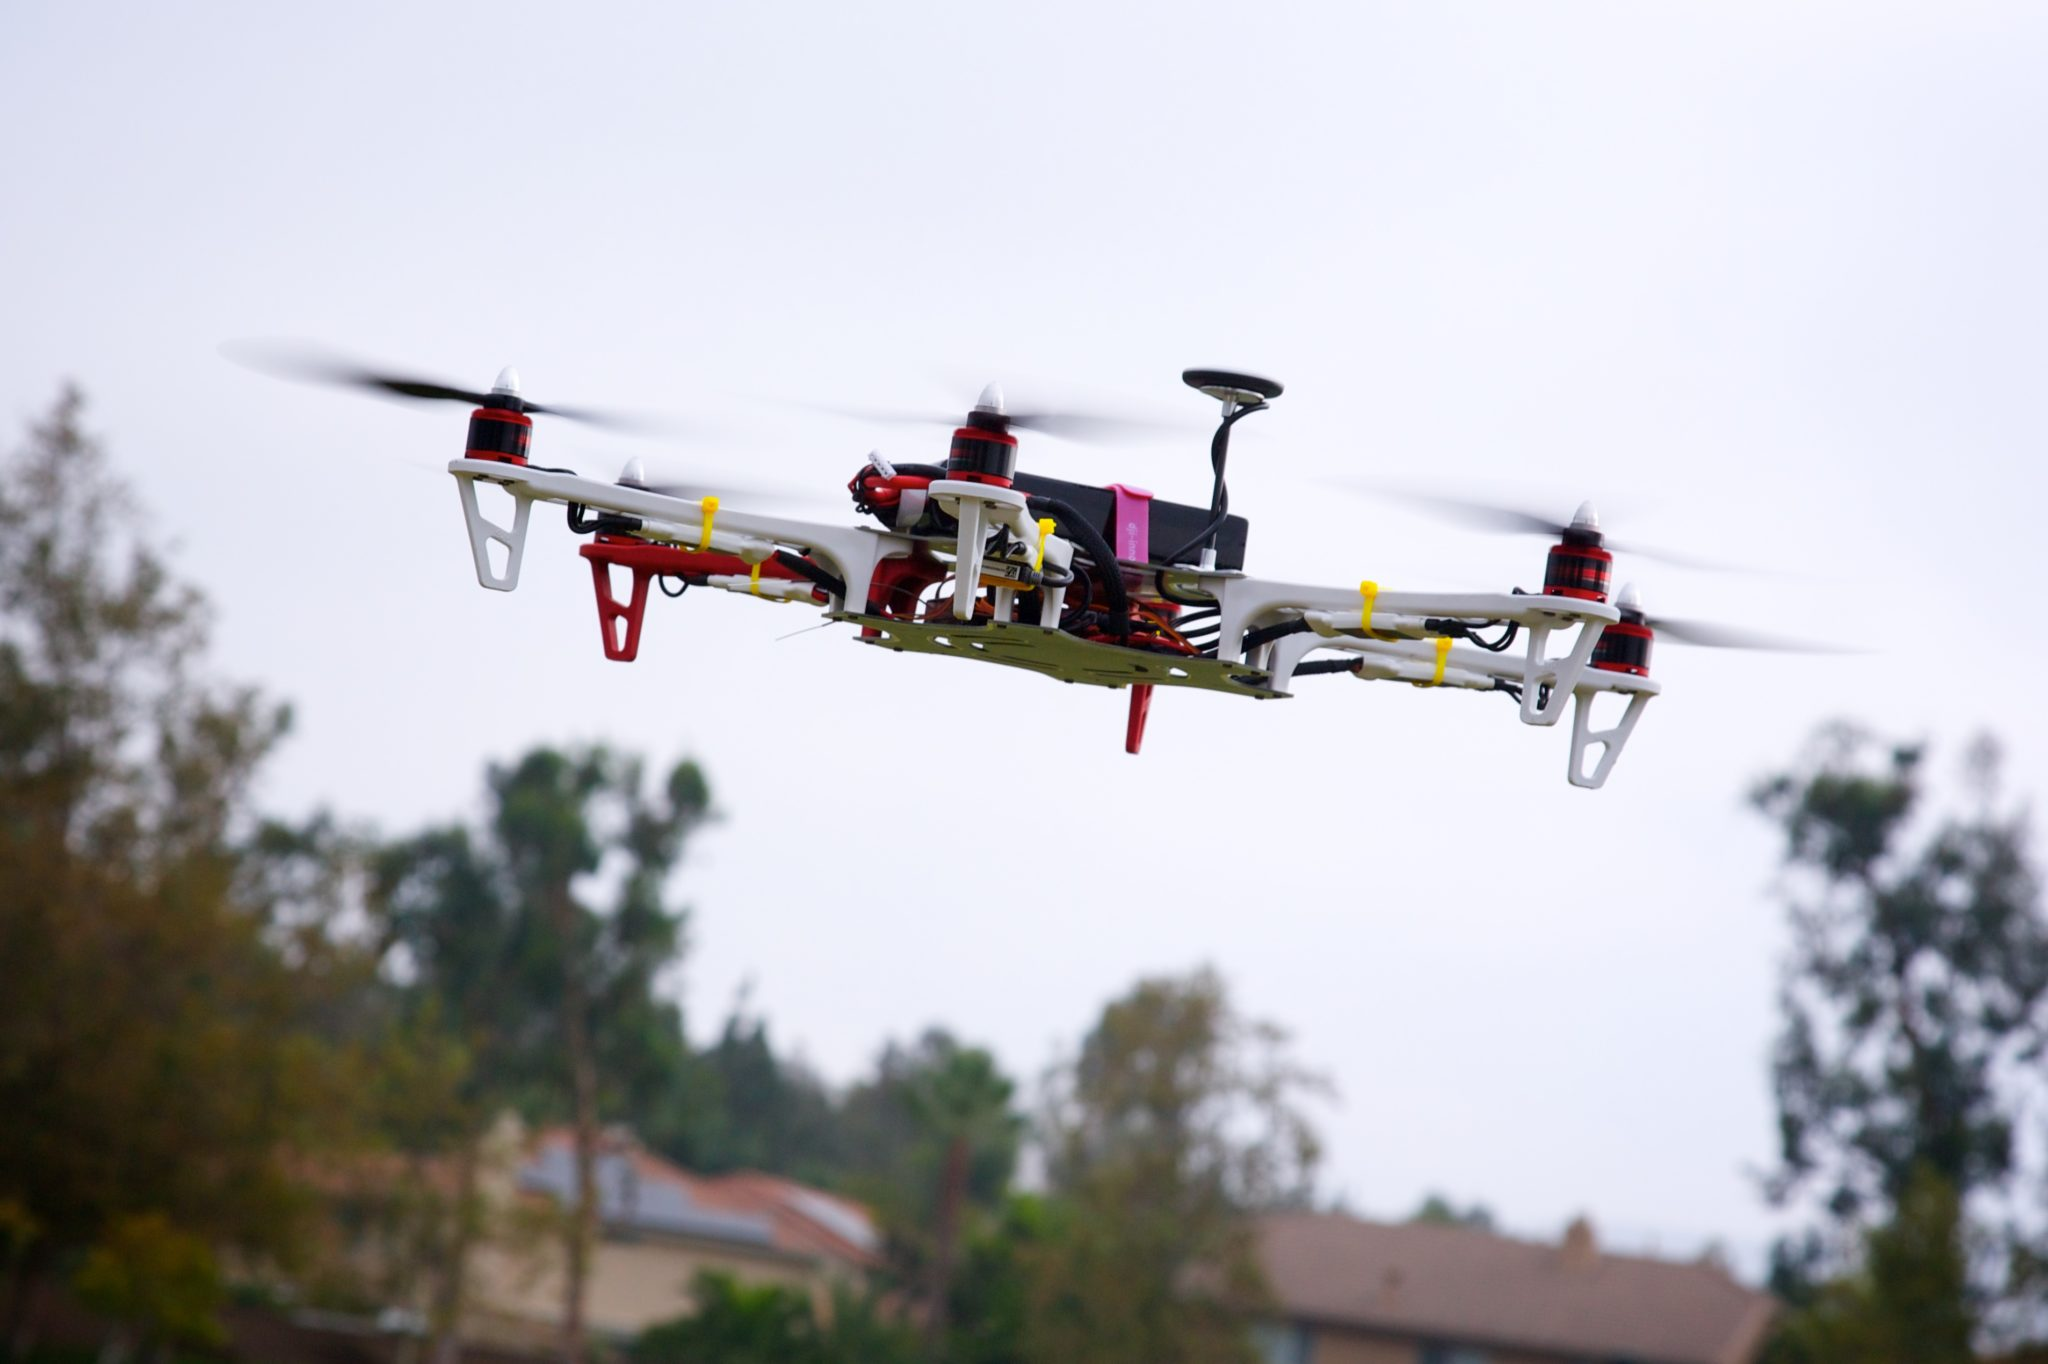 This is a drone or unmanned aerial vehicle if you want to get technical. (Richard Unten/Flickr)